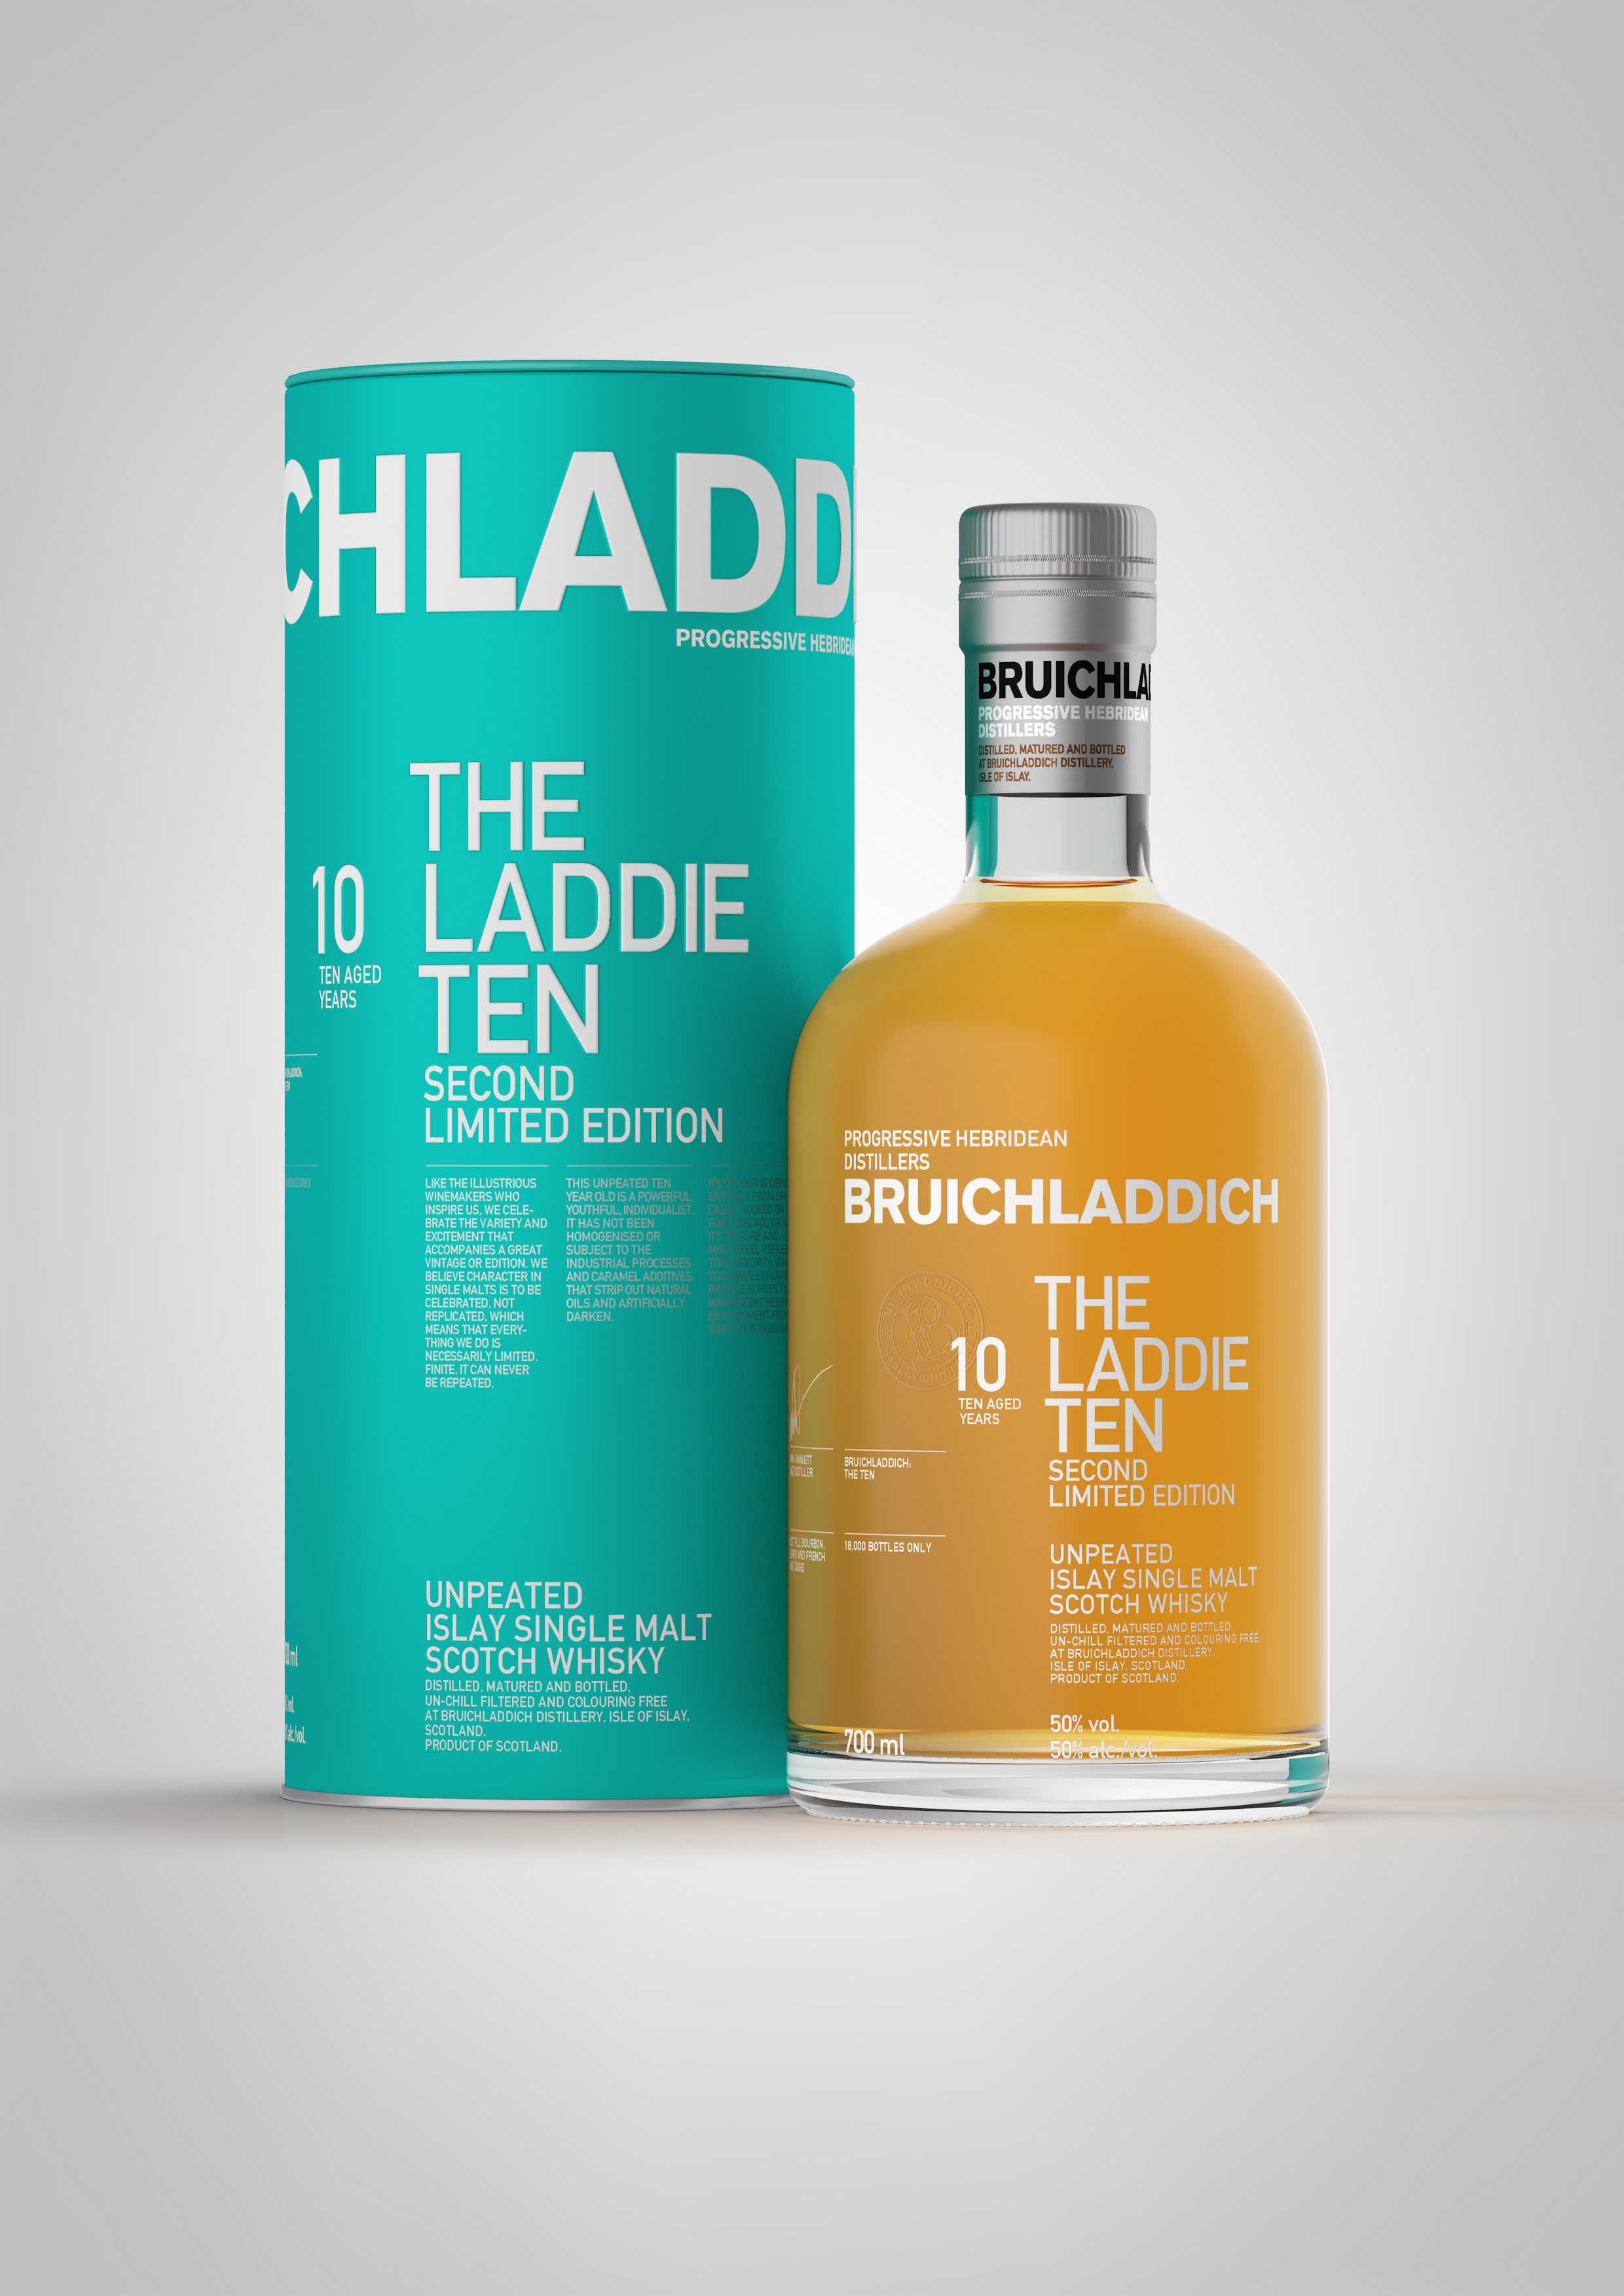 THE LADDIE TEN – Second limited Edition